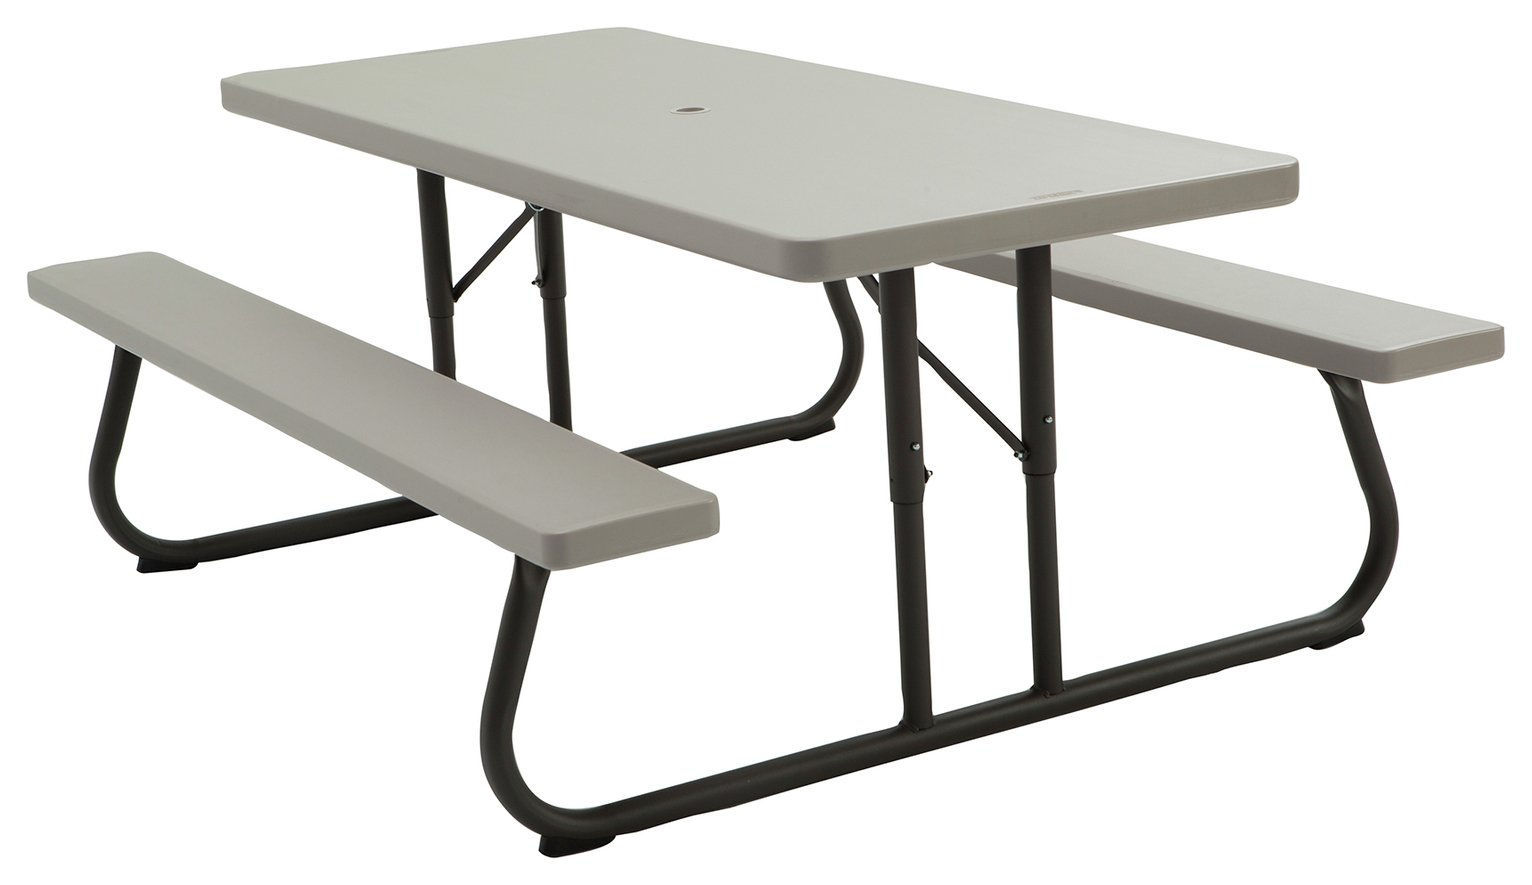 Lifetime Rectangular 6 Person Picnic Table - Grey